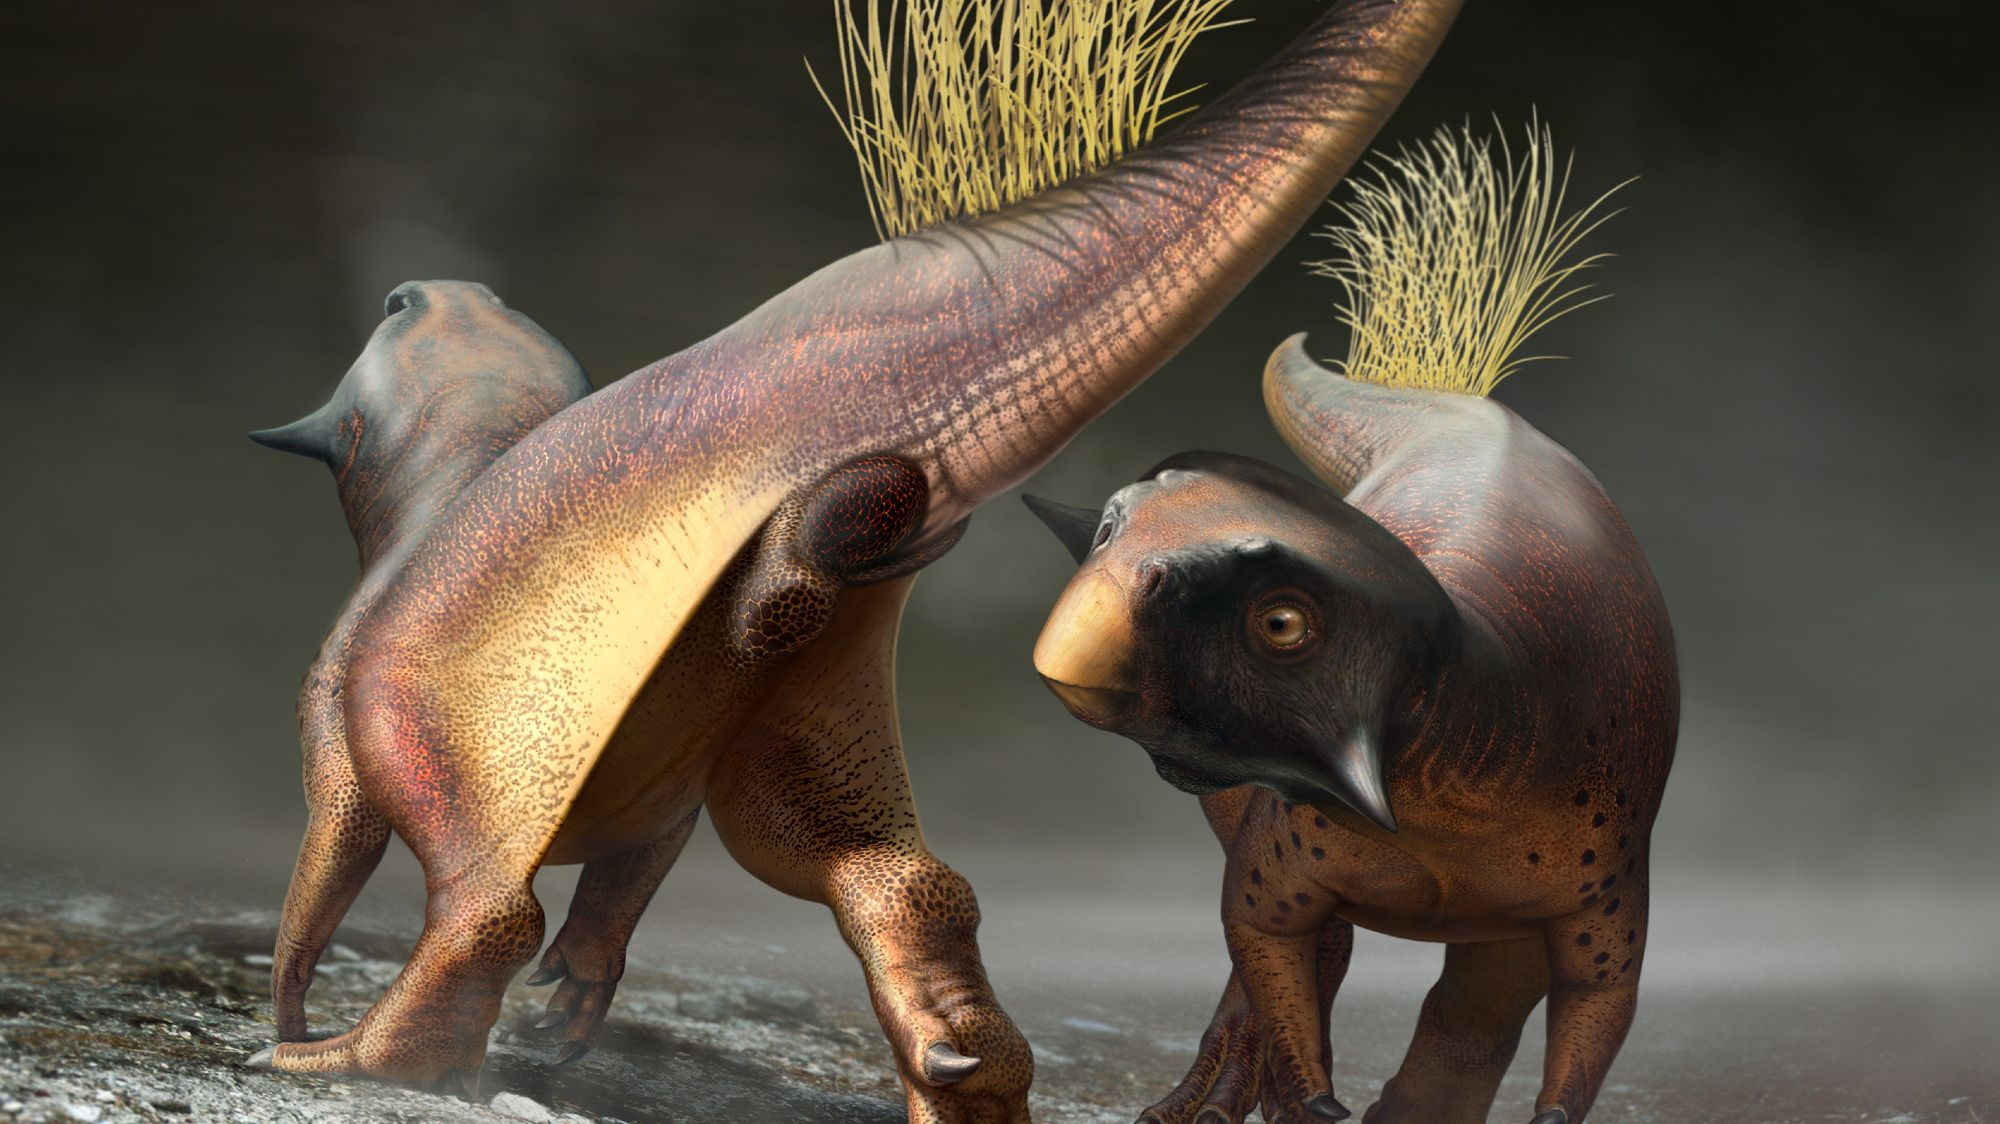 Paleontologists reconstructed a bothell of a dinosaur